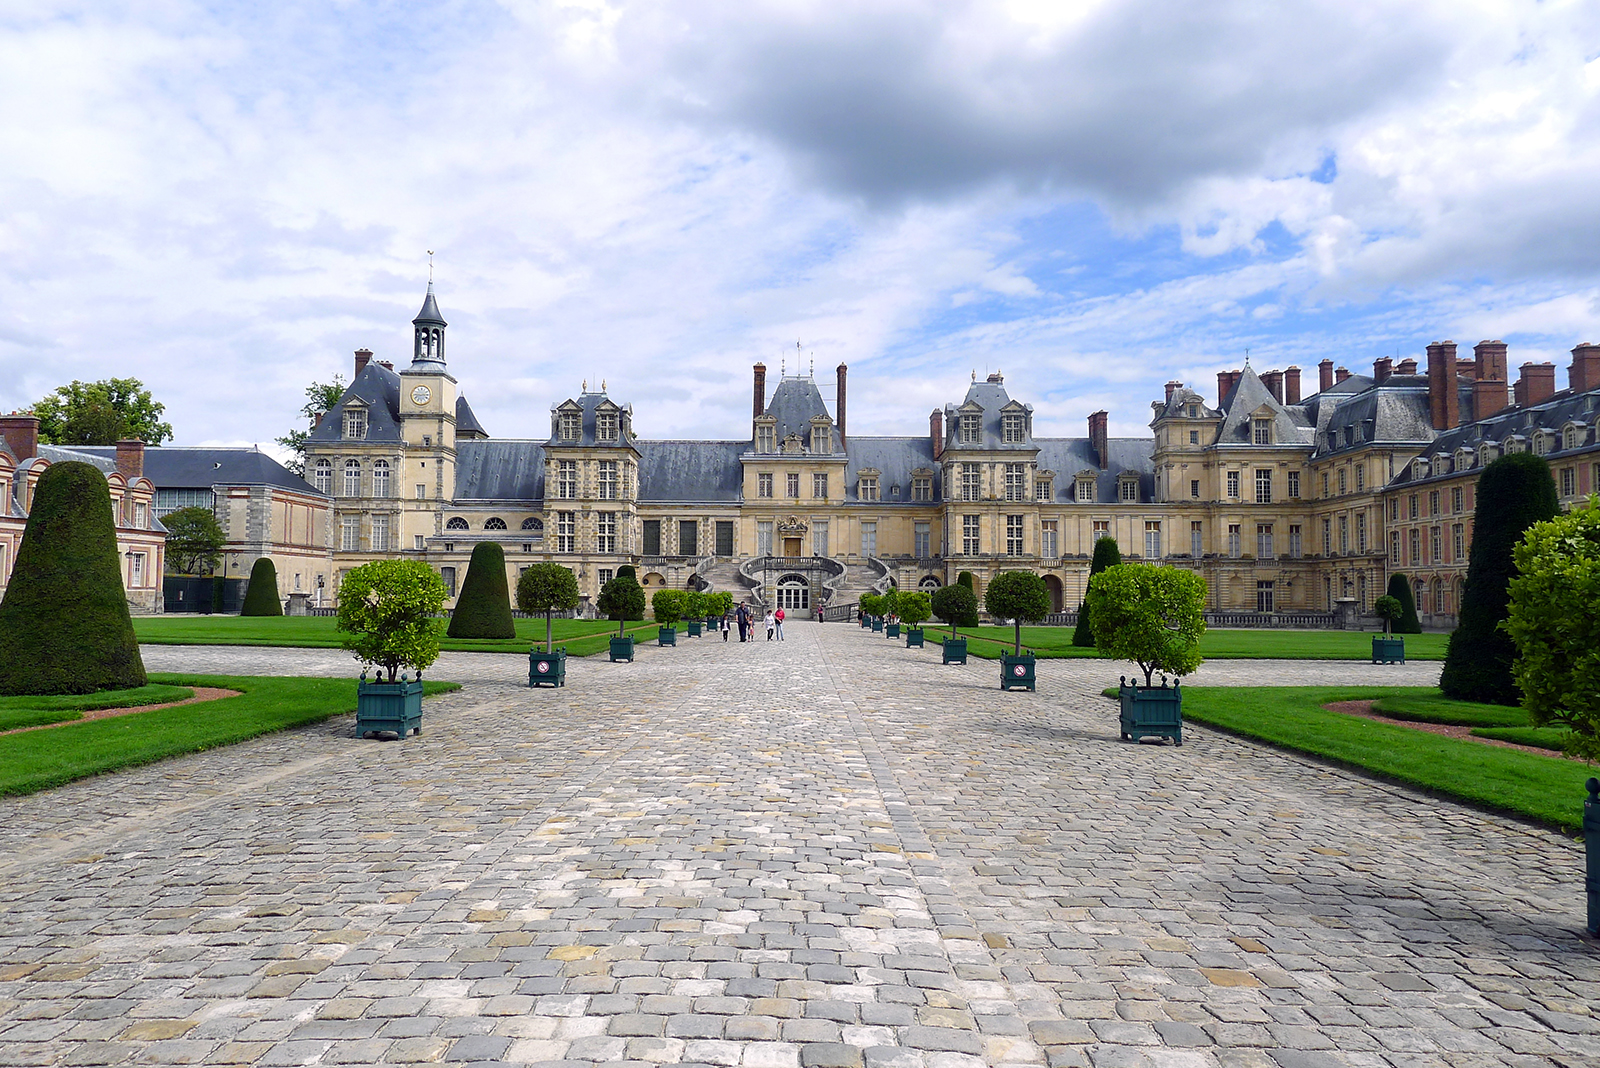 Château de Fontainebleau, initial design by Gilles Le Breton, 1528-1540, with additions until the 18th century (photo: Corinne Moncelli, CC BY-NC-ND 2.0)